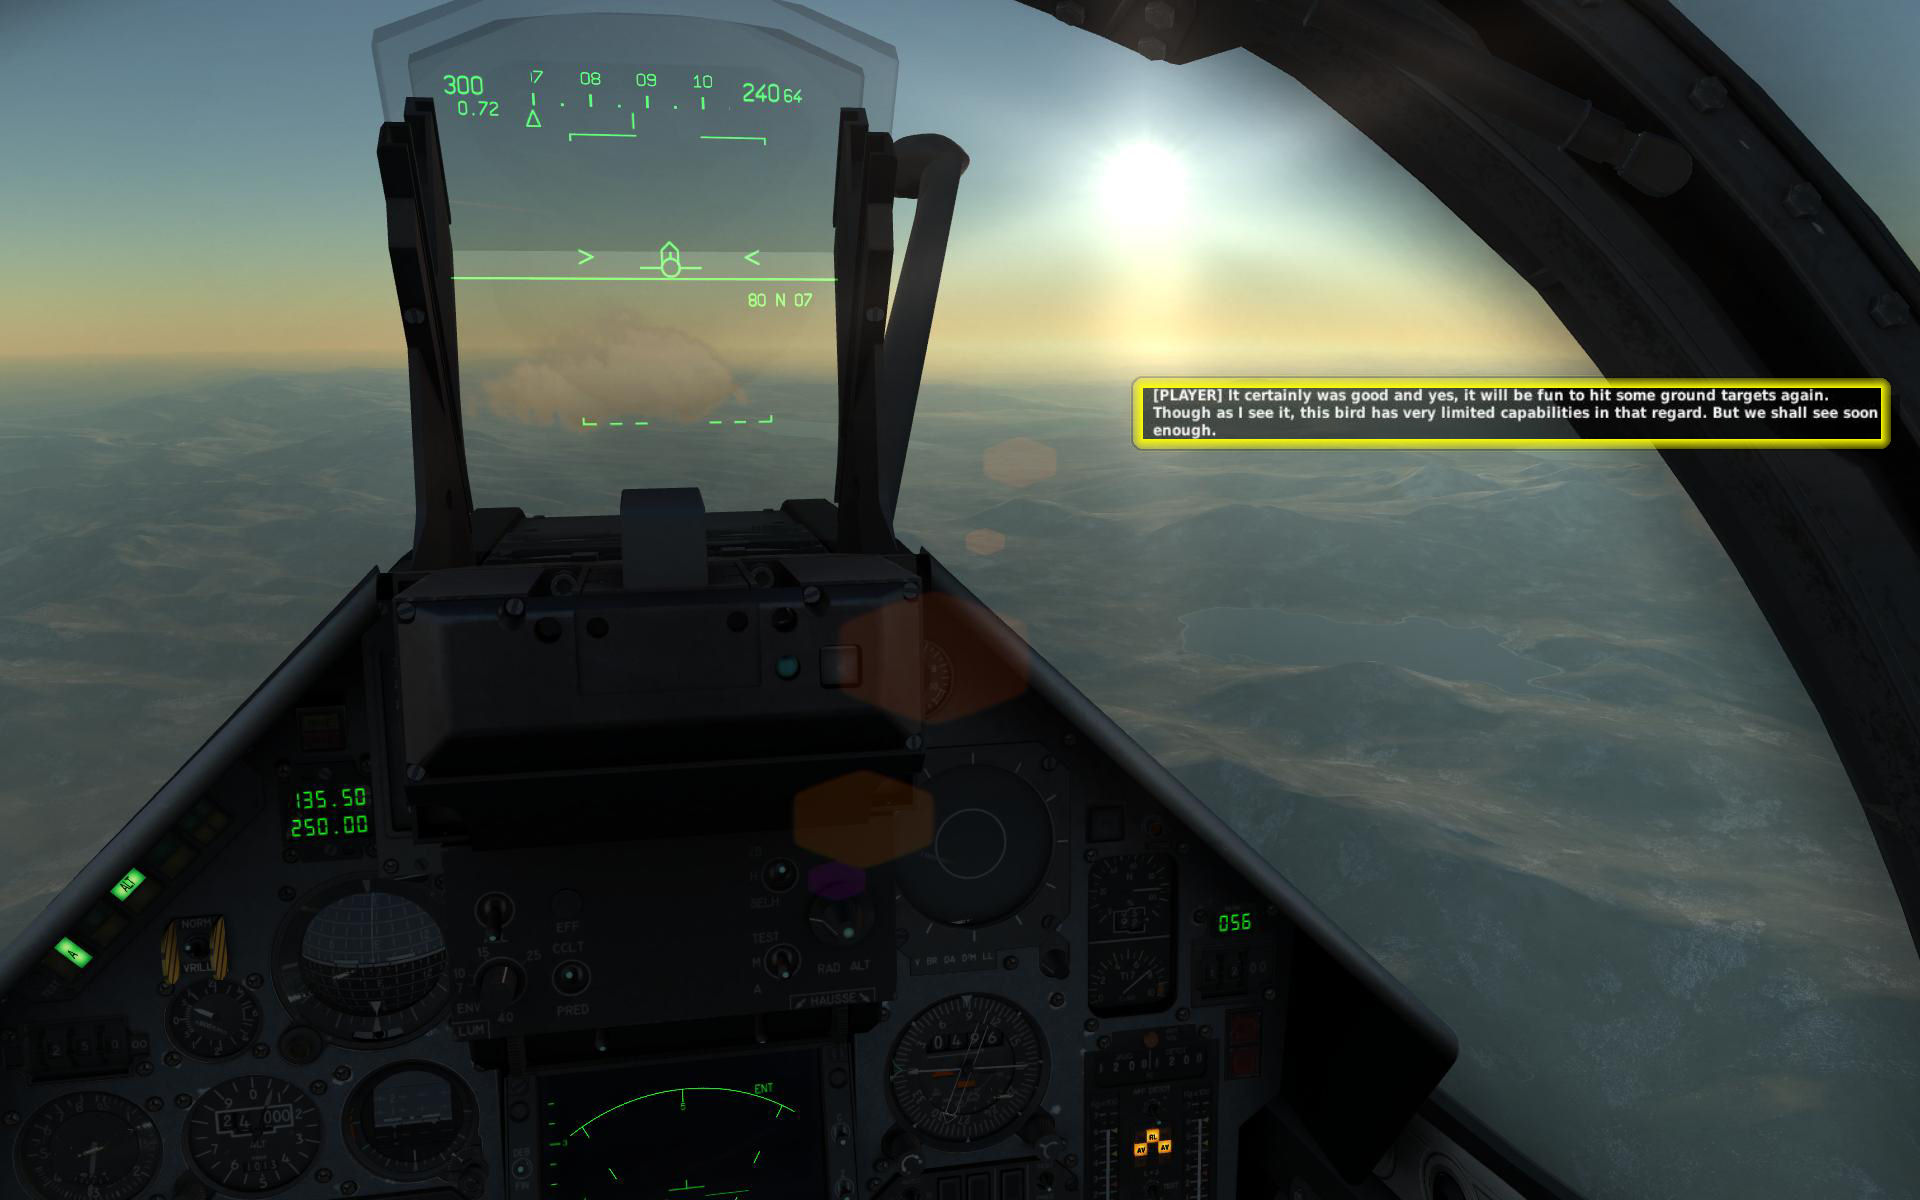 Preview: Baltic Dragon's Mirage 2000C Campaign for DCS World